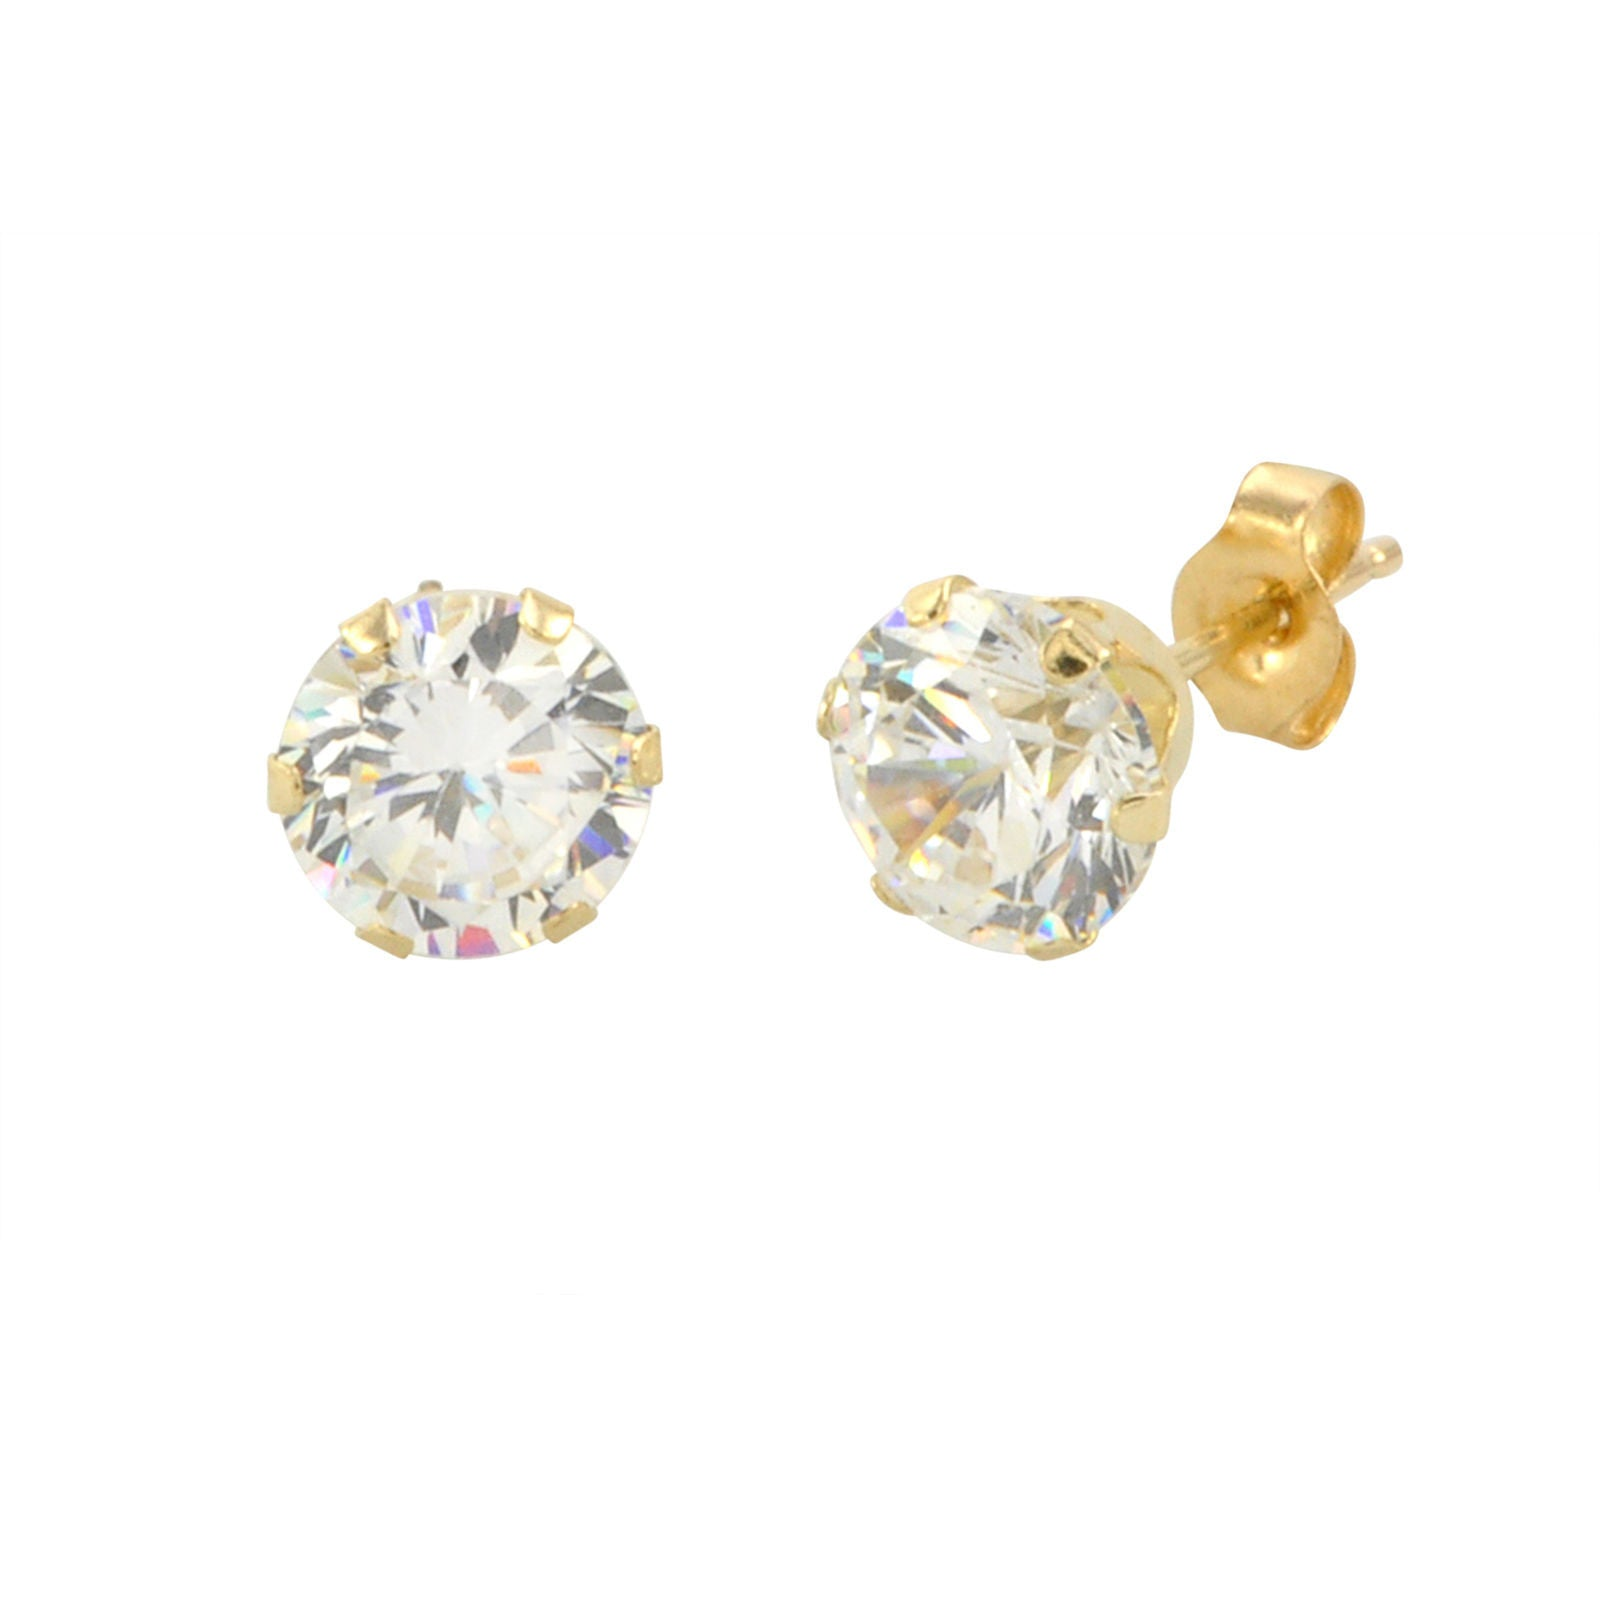 grahams a silver image zirconia sterling cubic in open jewellers stud georgini circle earrings